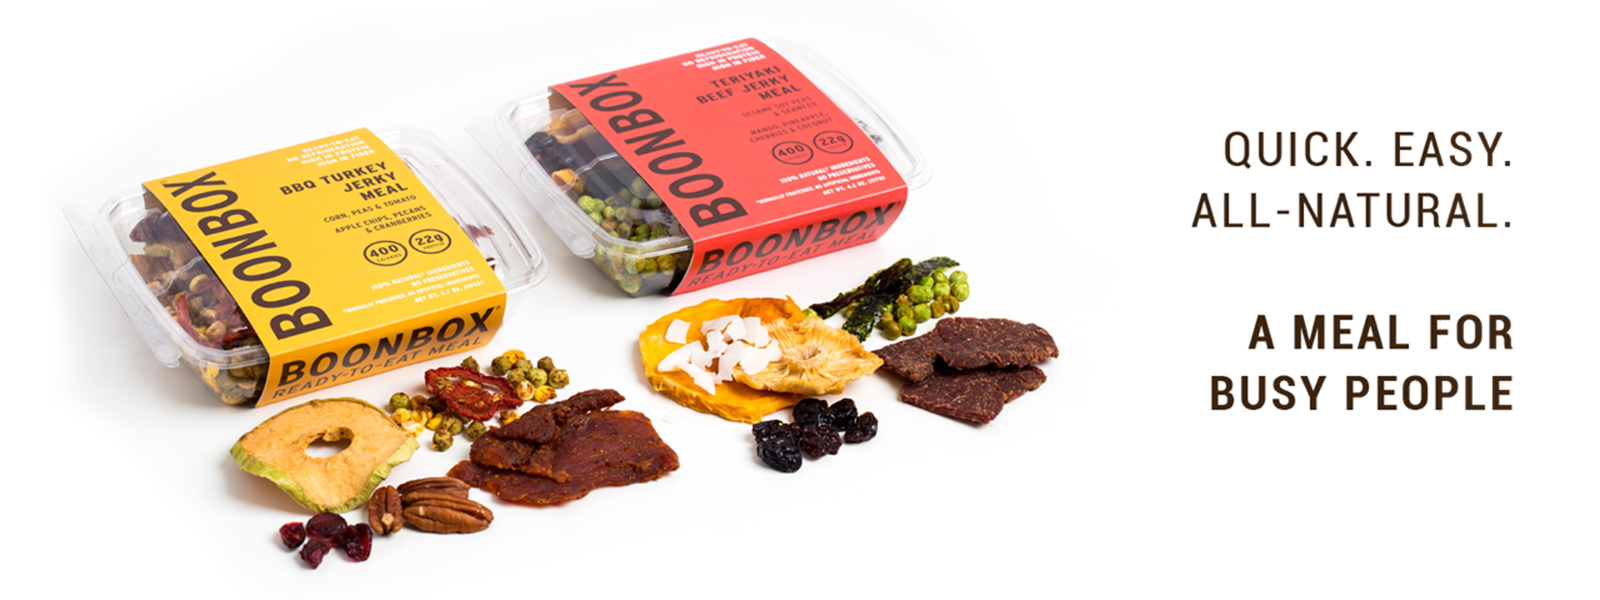 BOONBOX: QUICK. EASY. ALL-NATURAL. A MEAL FOR BUSY PEOPLE